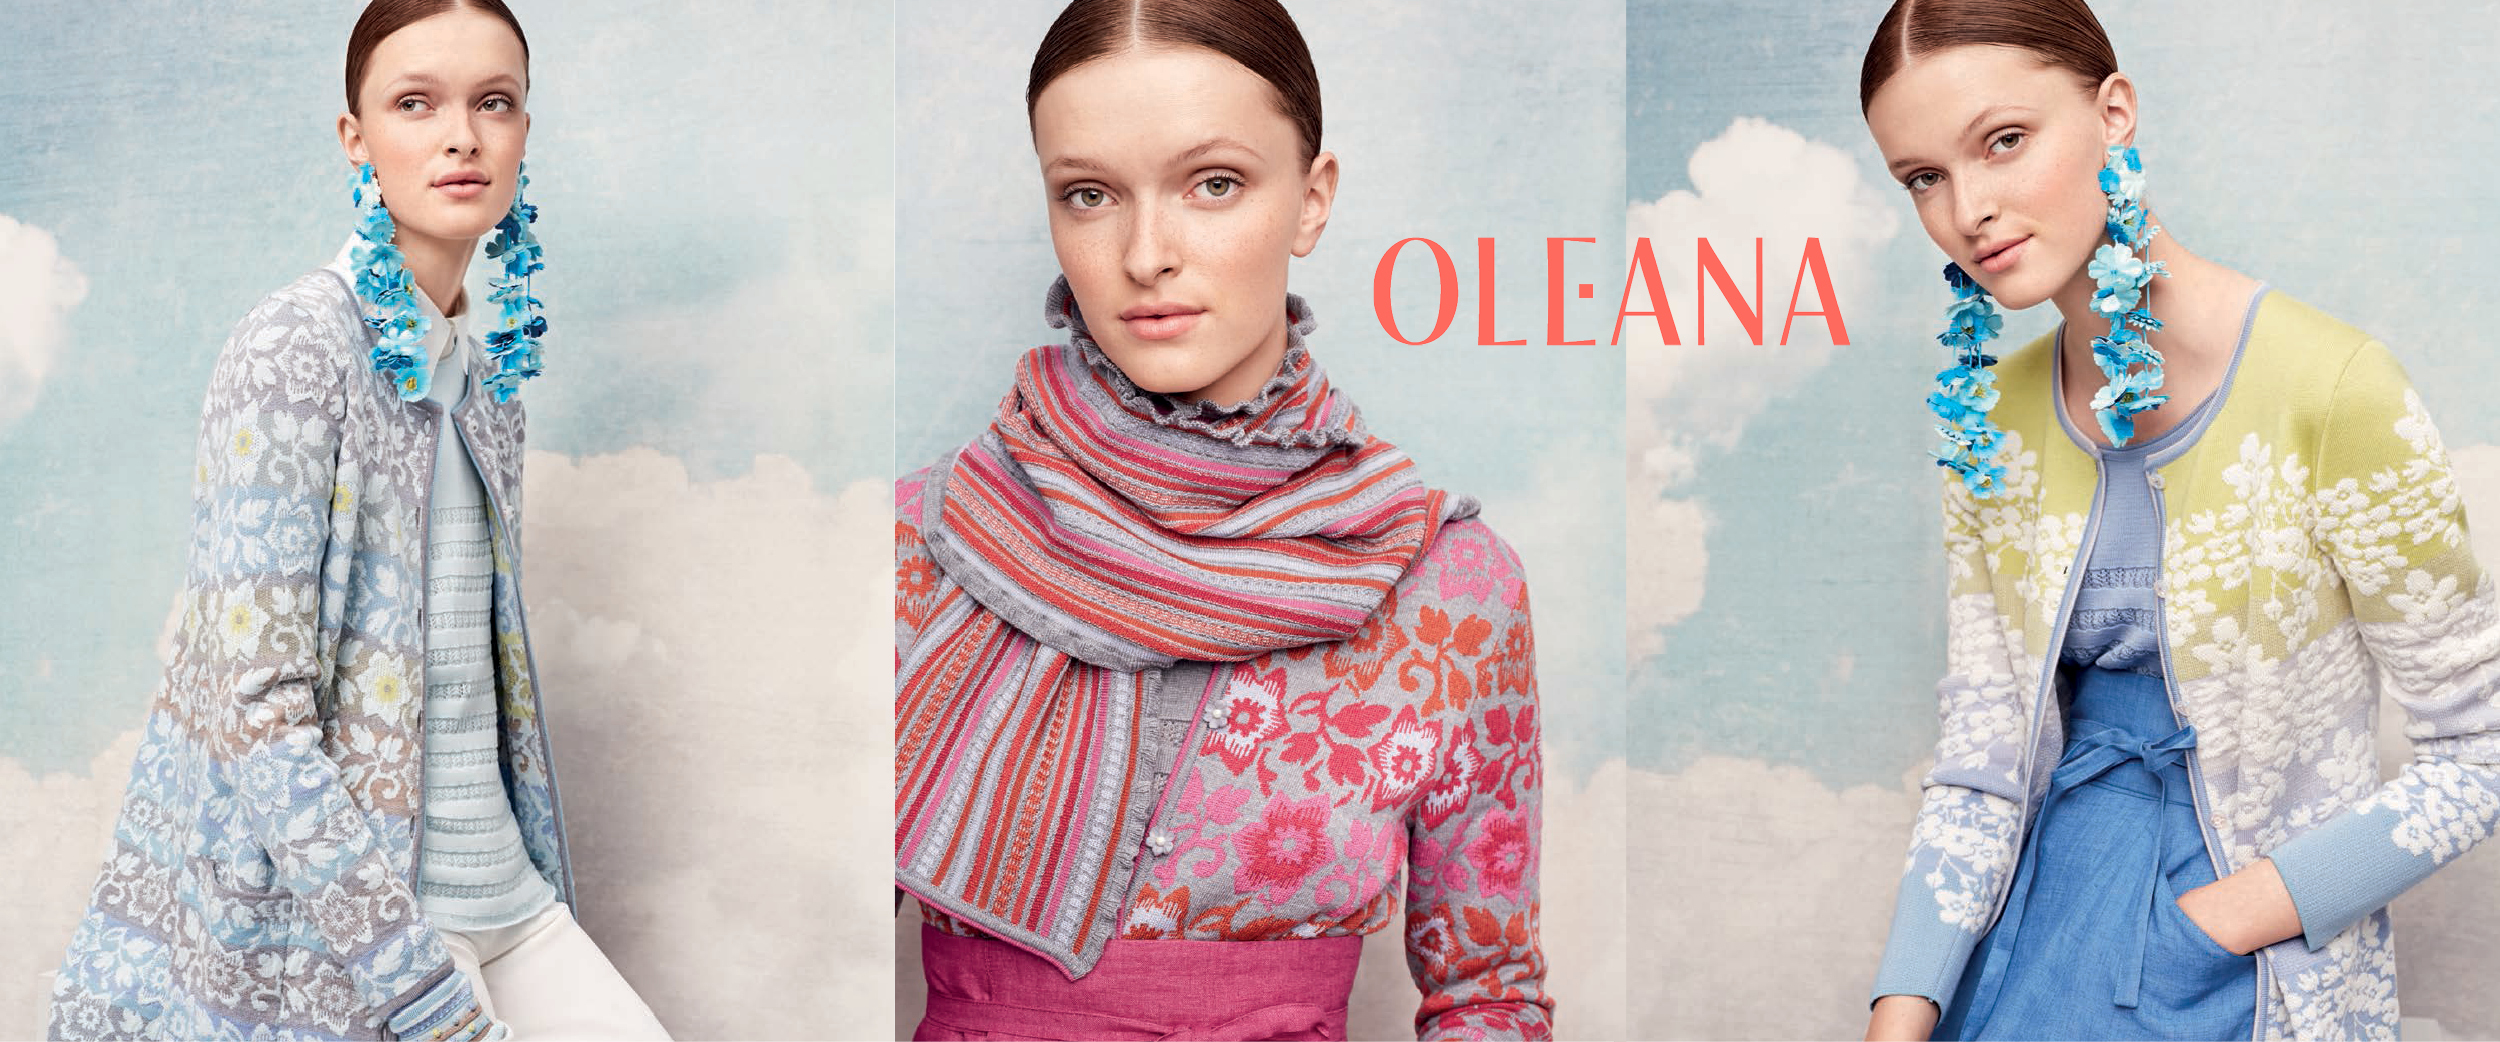 The Nordic Shop OLEANA Boutique